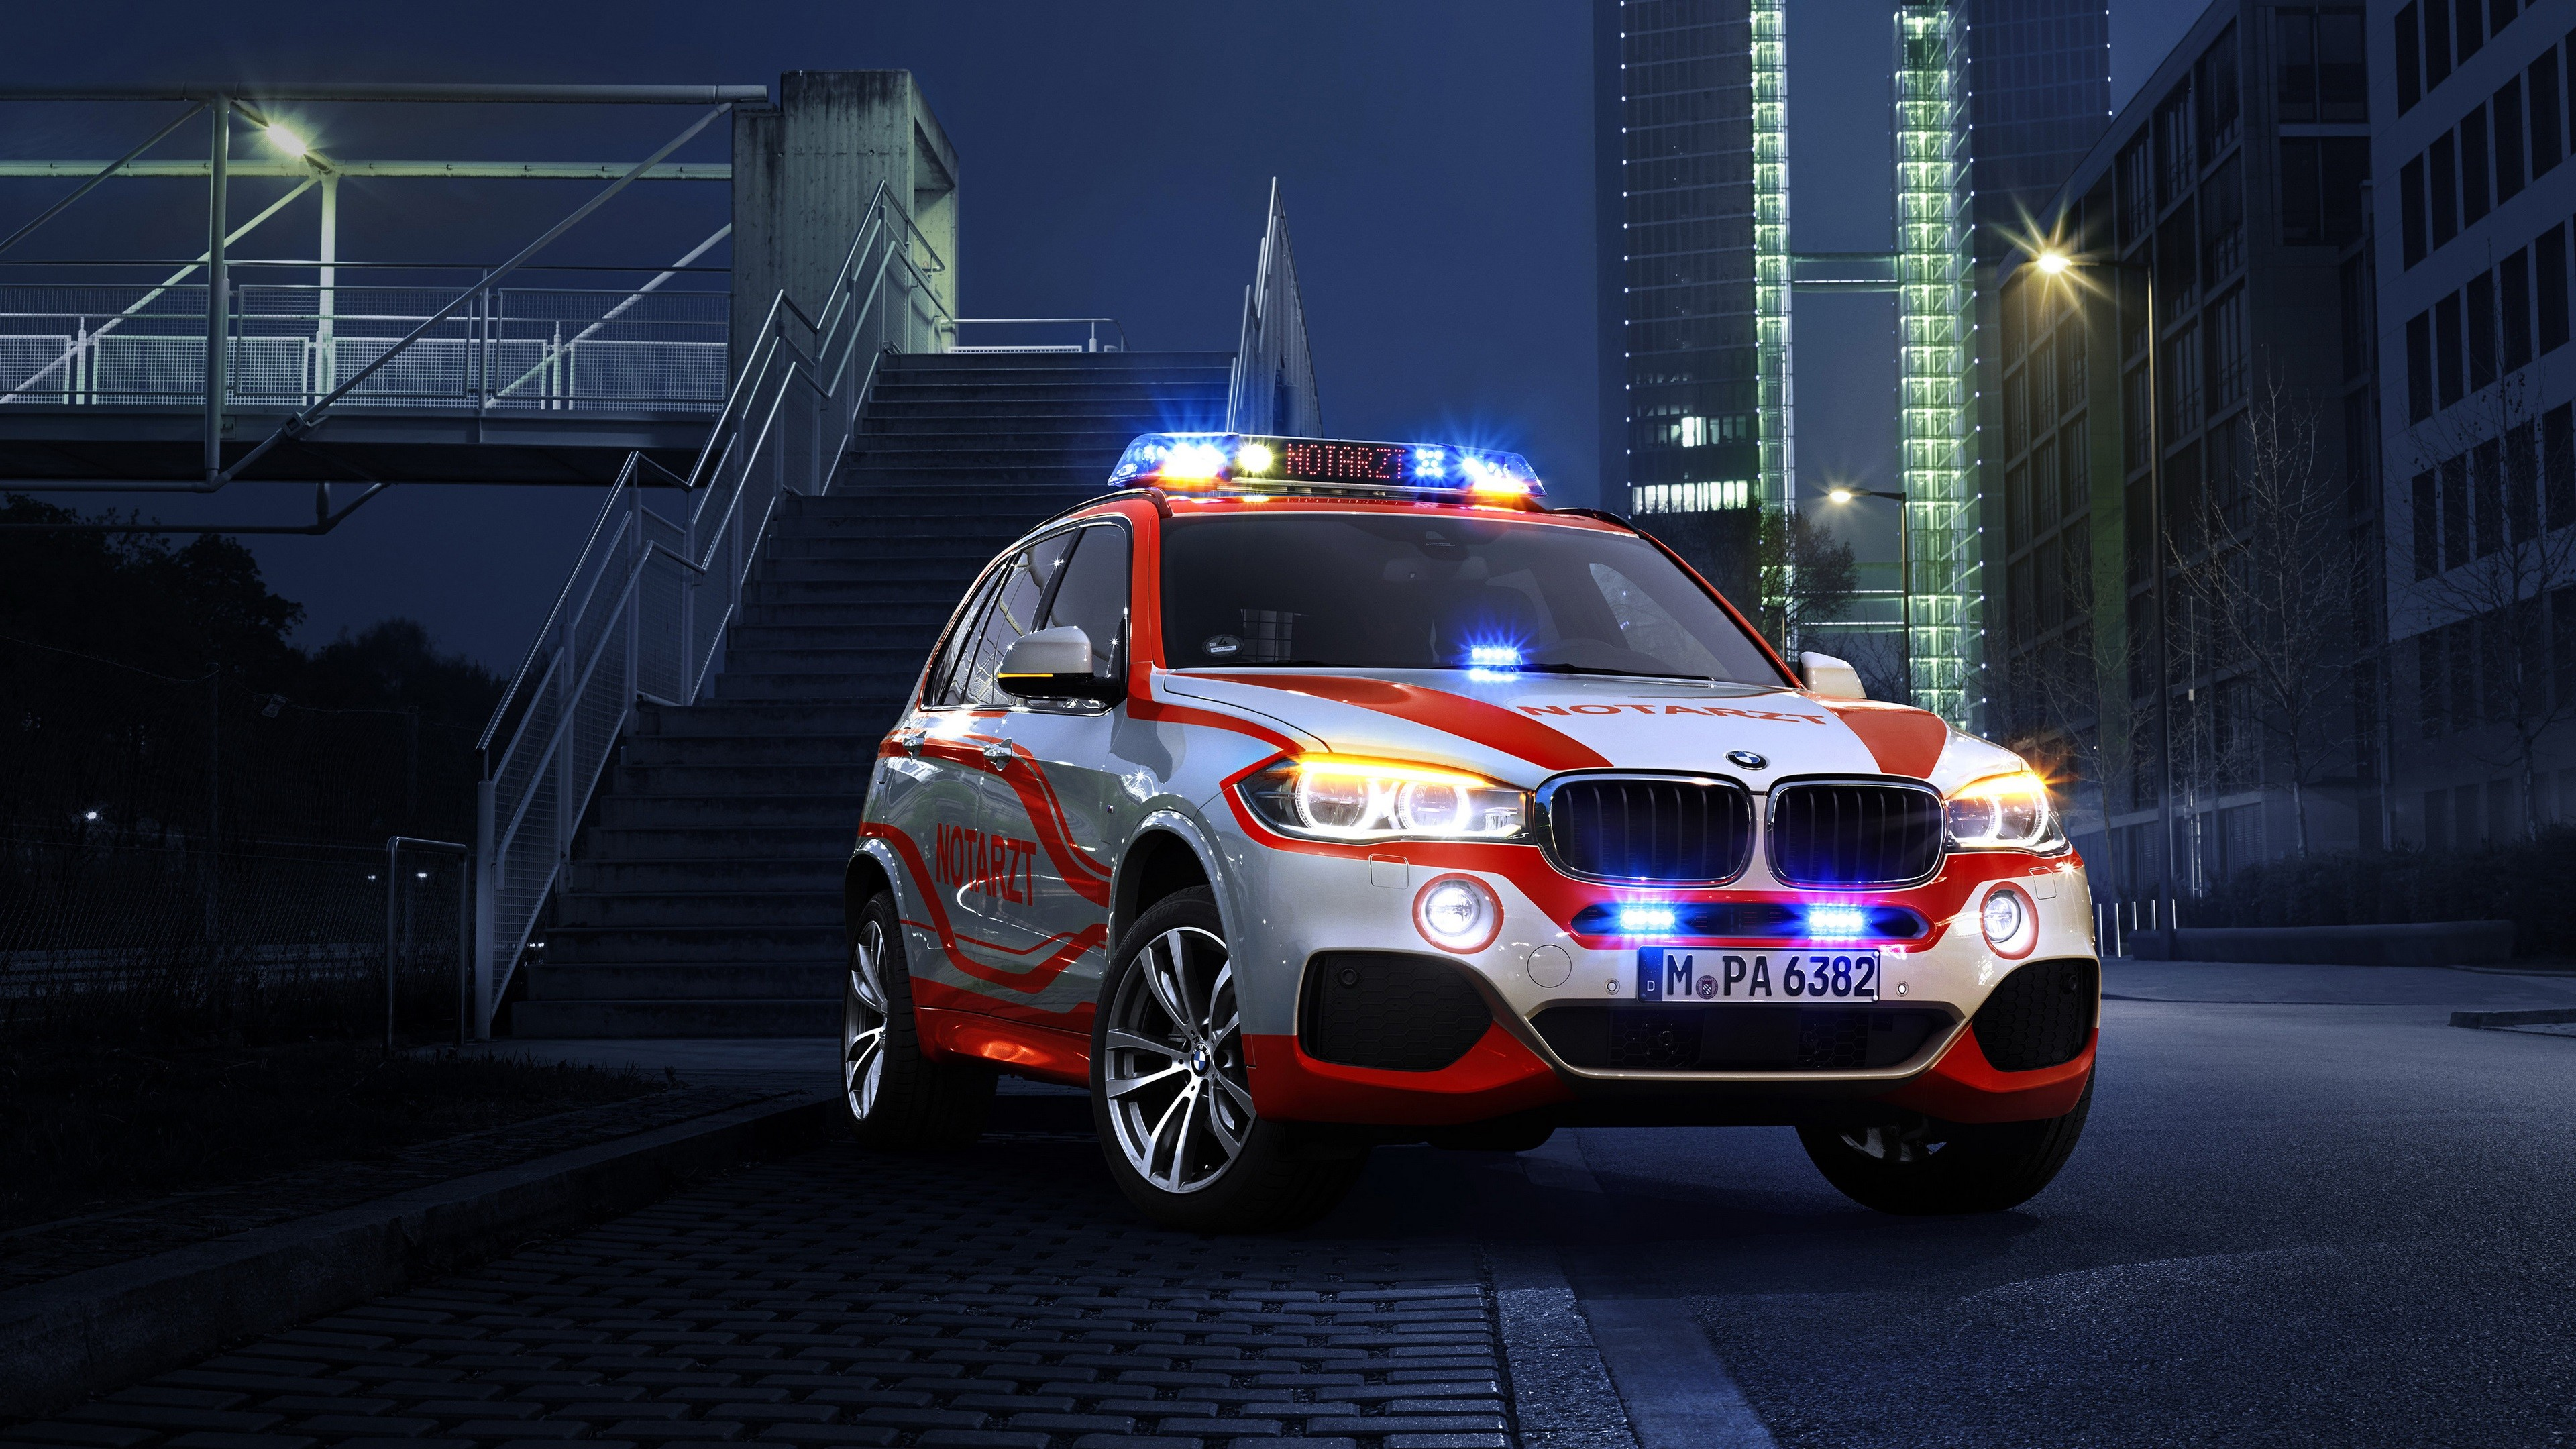 Police Car Wallpapers 72 Background Pictures